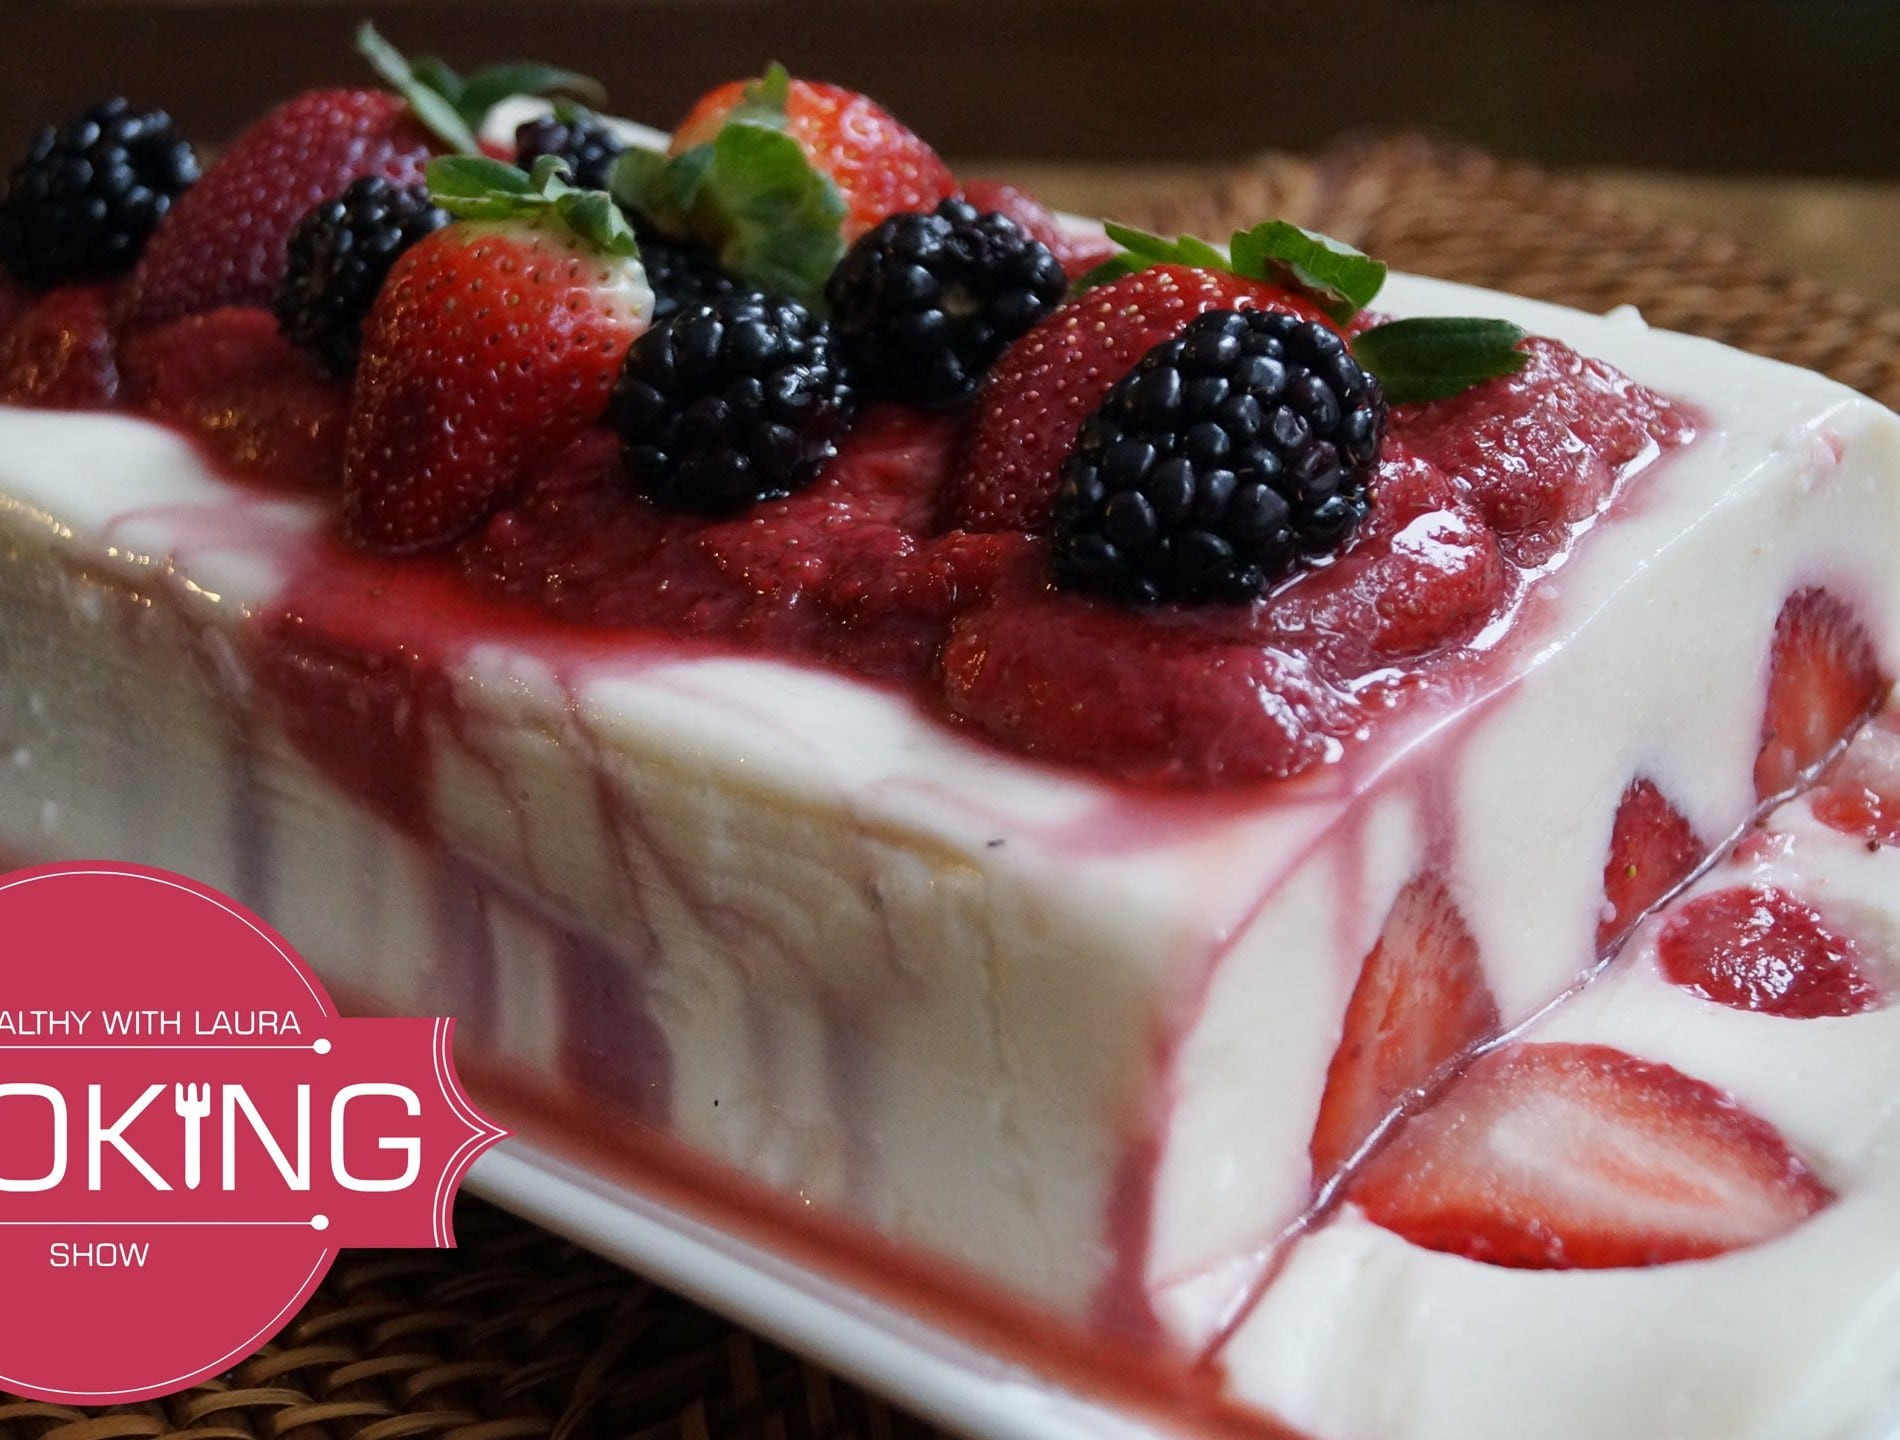 Healthy Low Fat Desserts  Deliciously Healthy Low Fat Yogurt and Strawberry Dessert